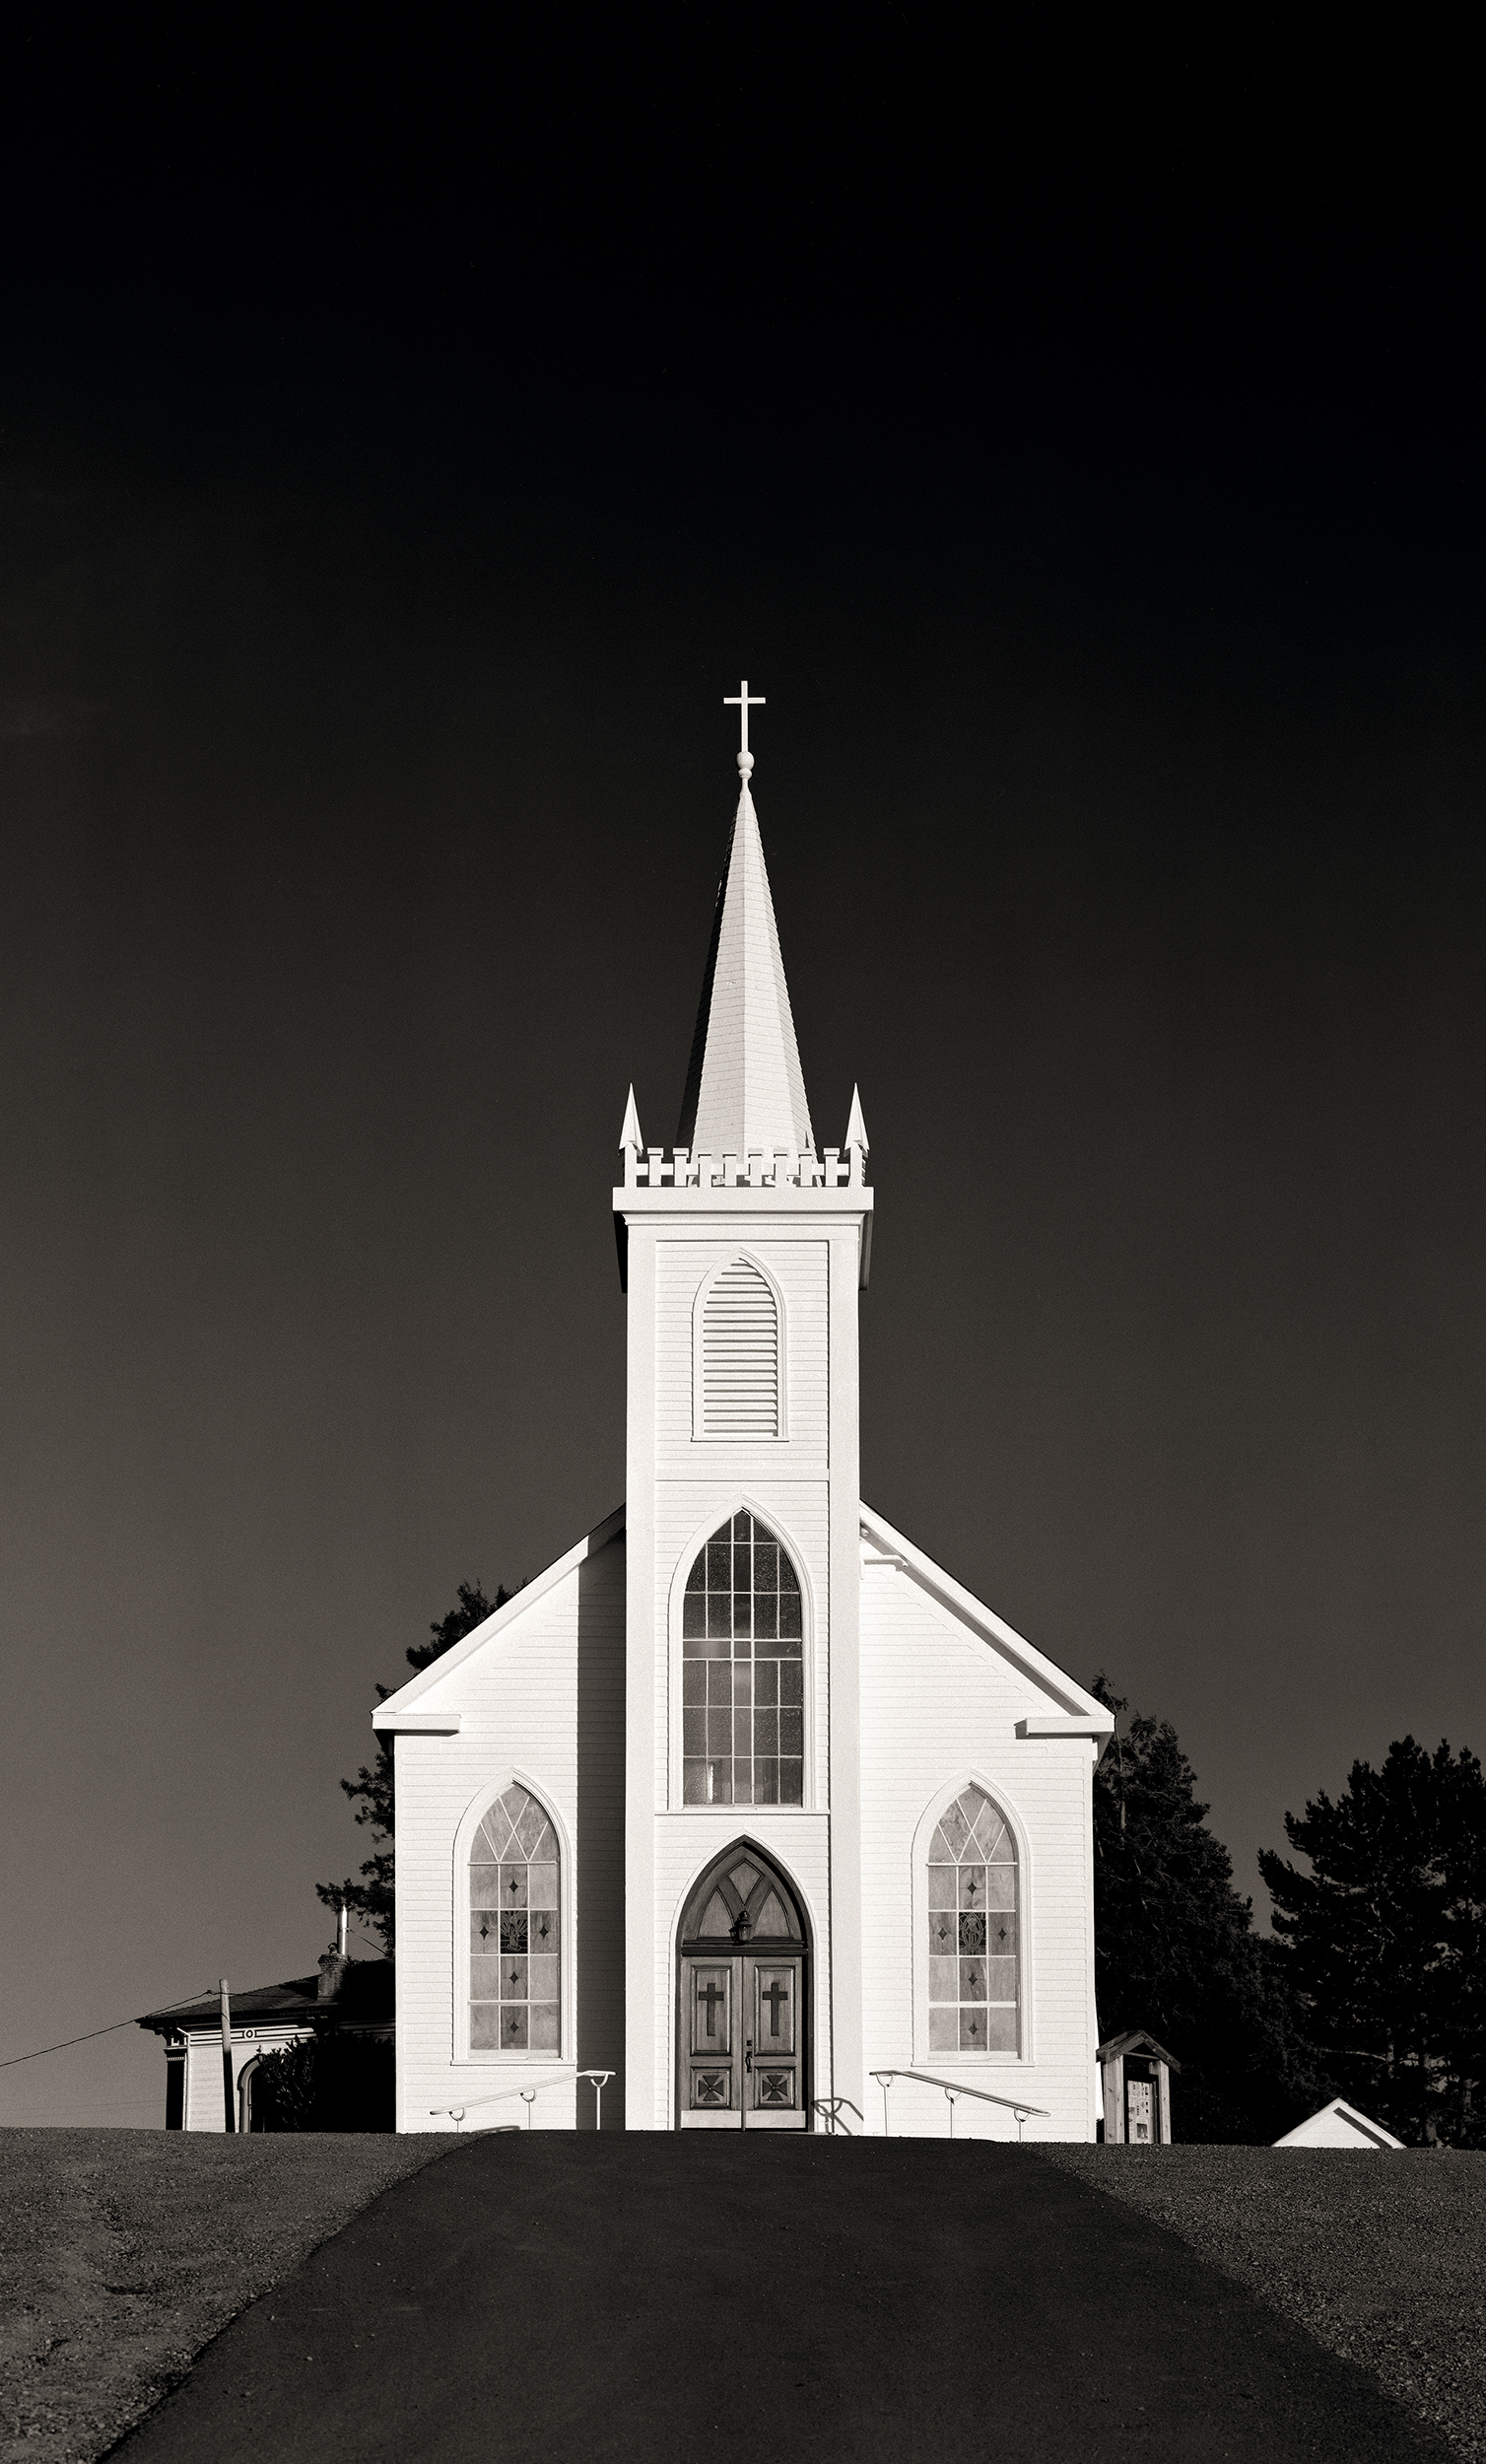 St. Teresa's Church, Bodega Bay